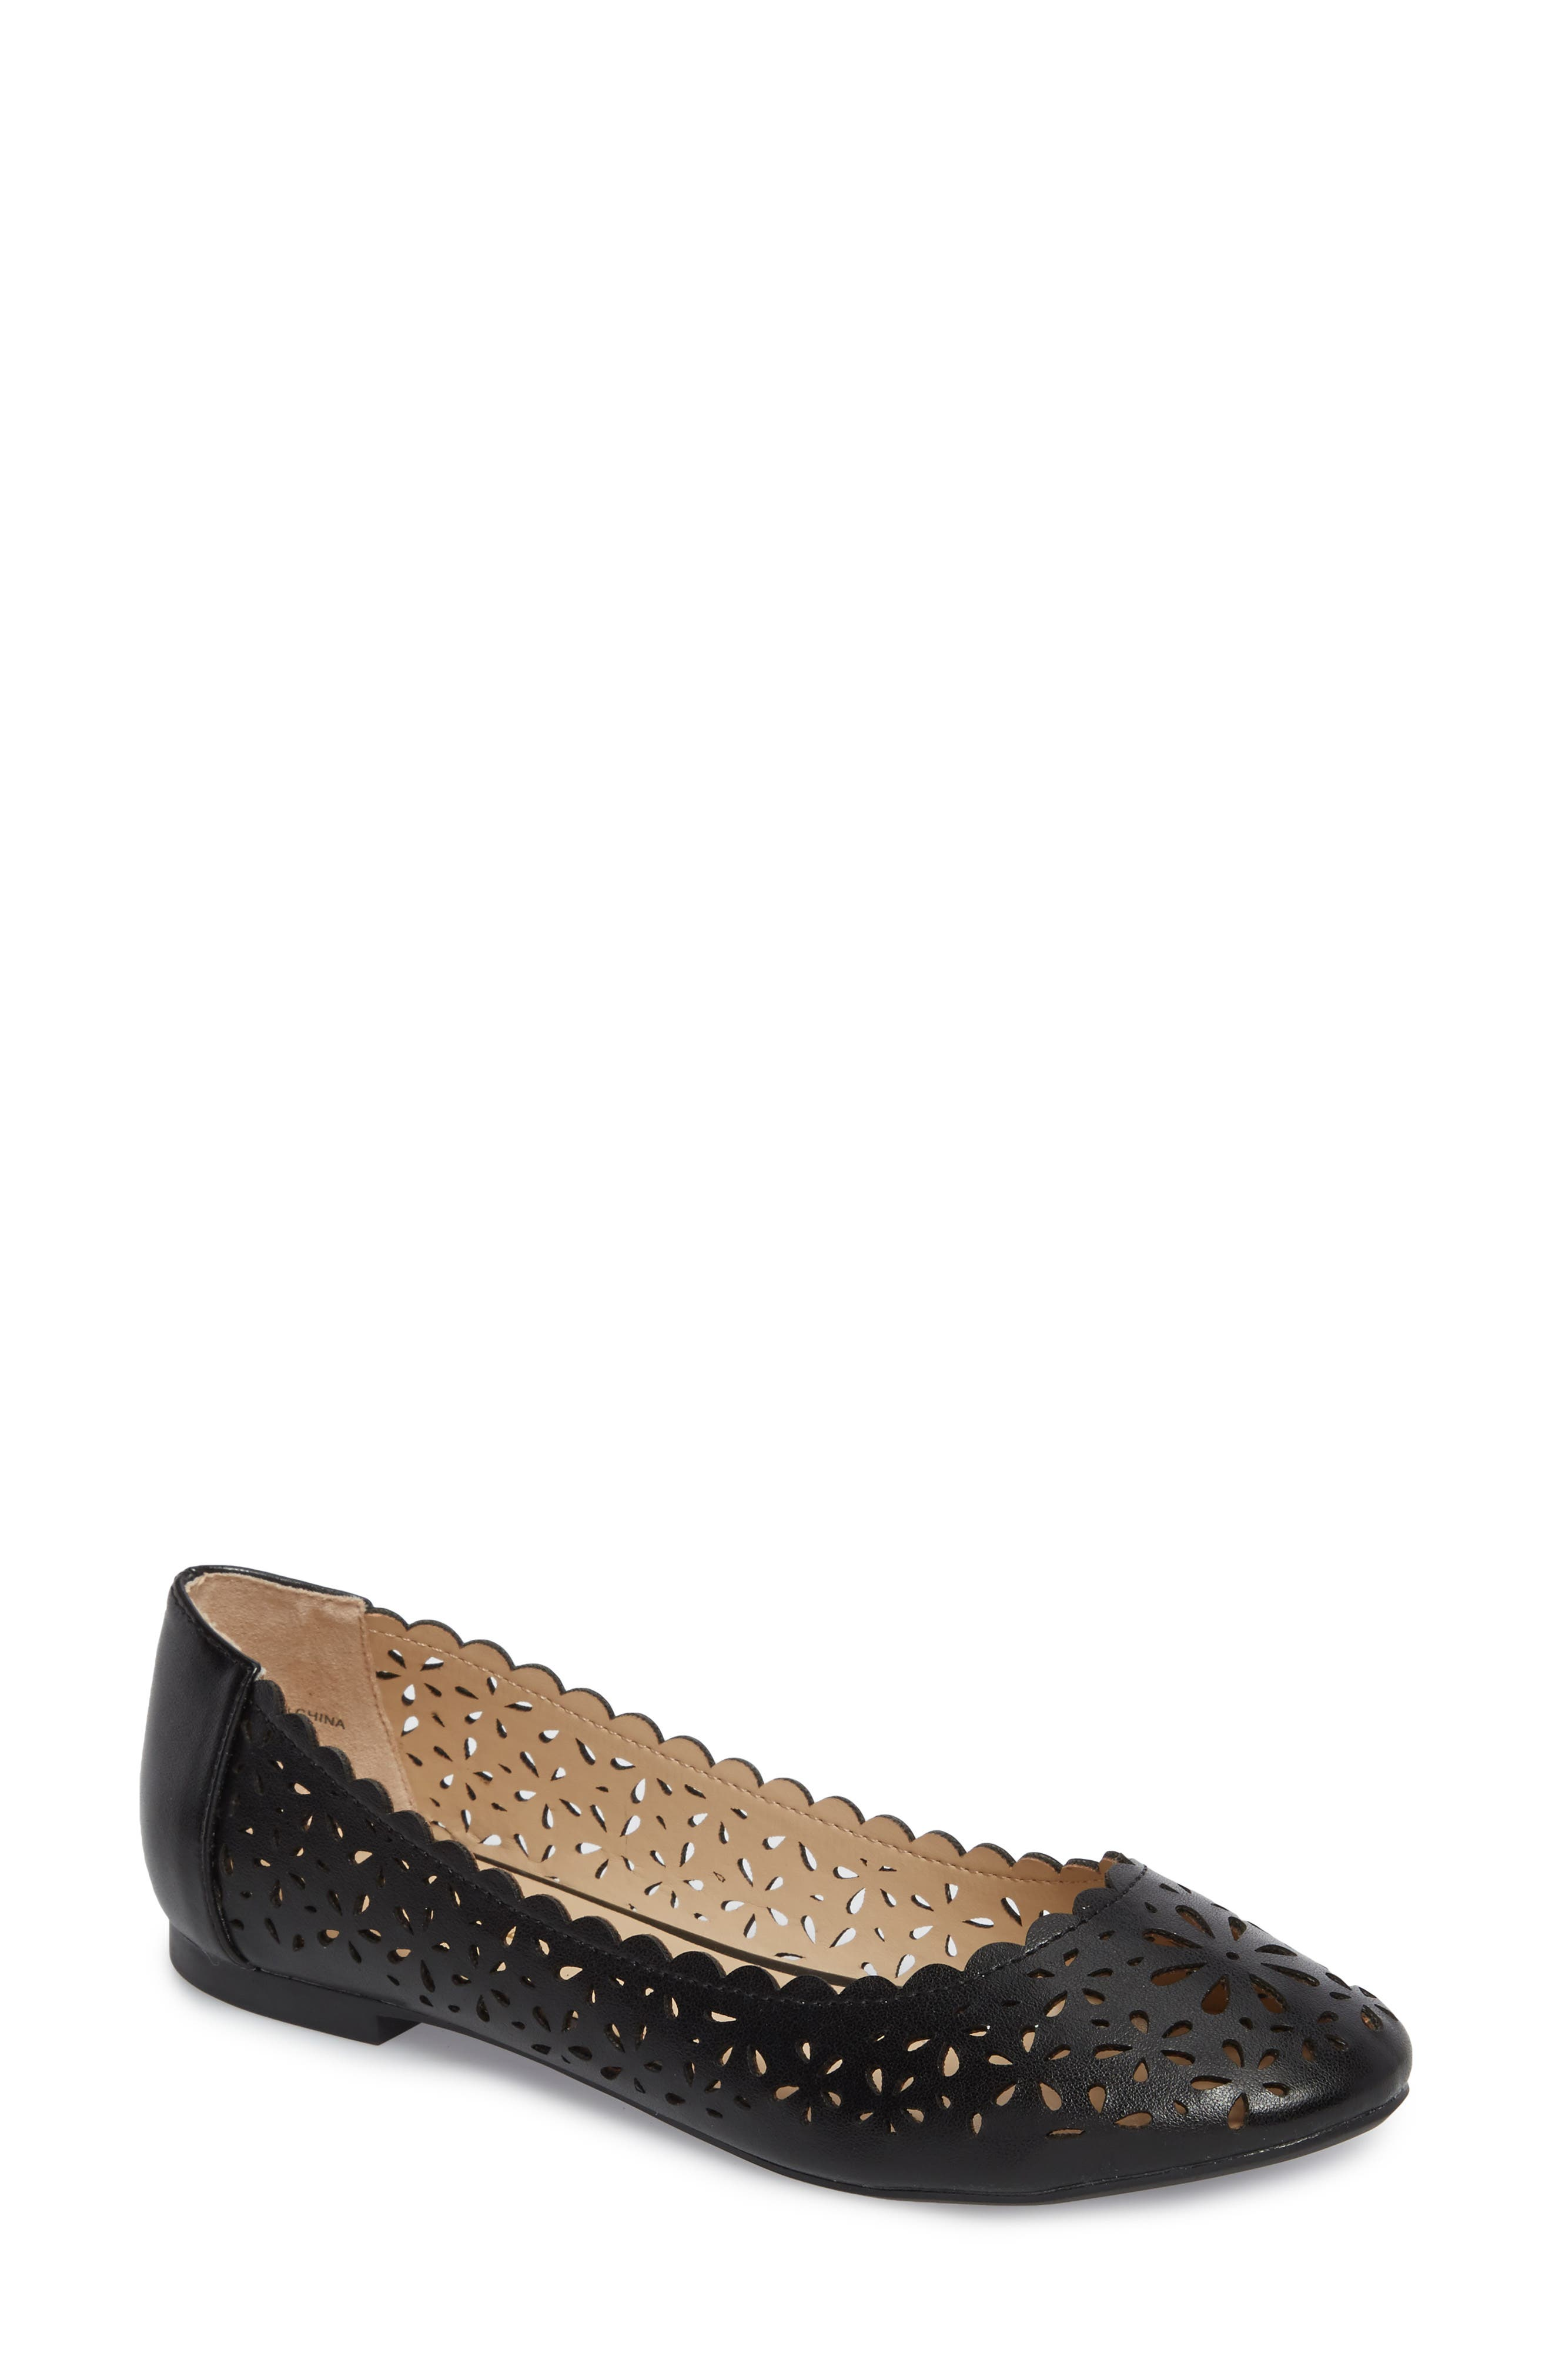 Annora Perforated Flat,                         Main,                         color, Black Fabric